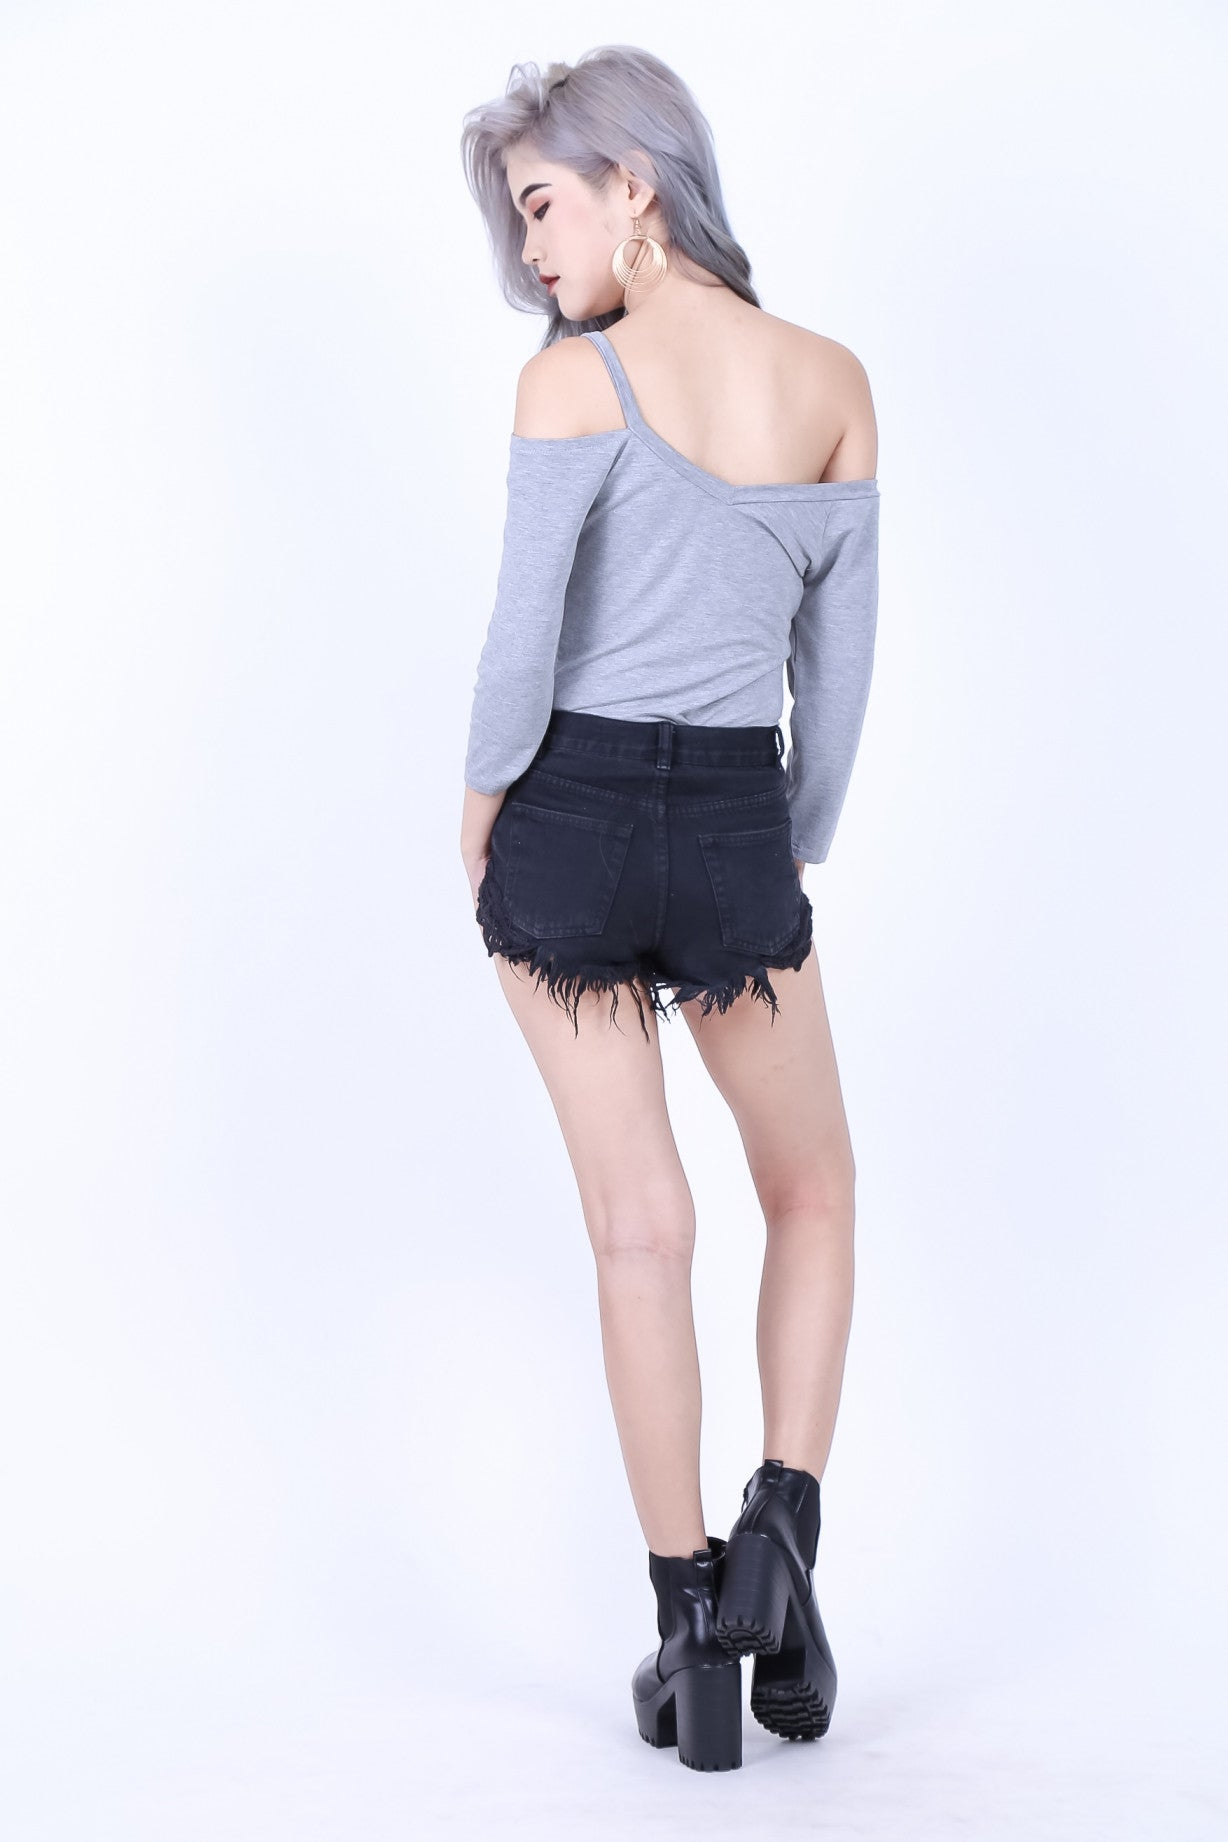 *RESTOCKED* COMFY DUAL STRAPS TOP IN LIGHT GREY - TOPAZETTE